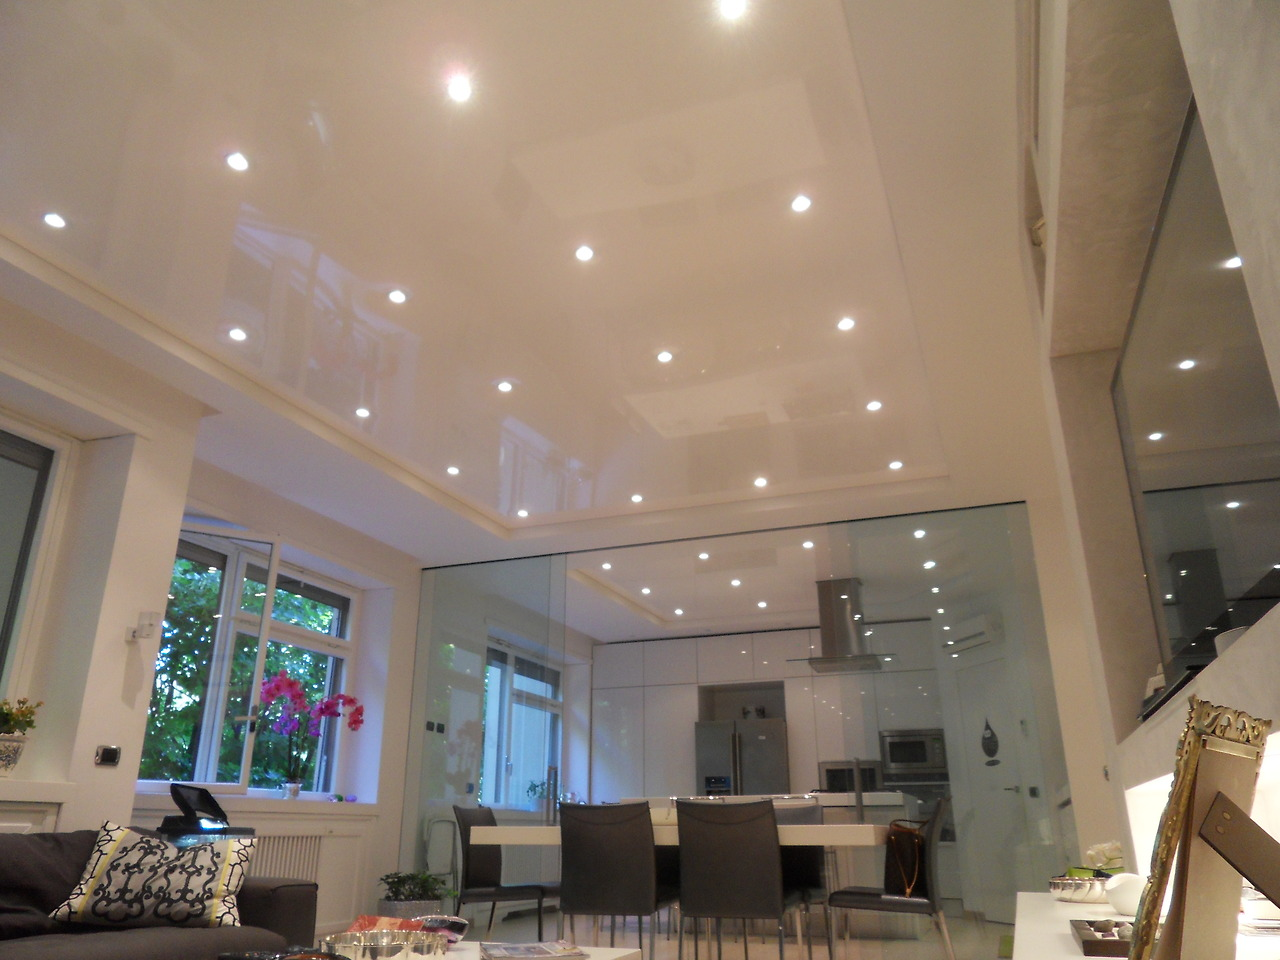 Advantages and disadvantages of a multi-level stretch ceiling in the living room